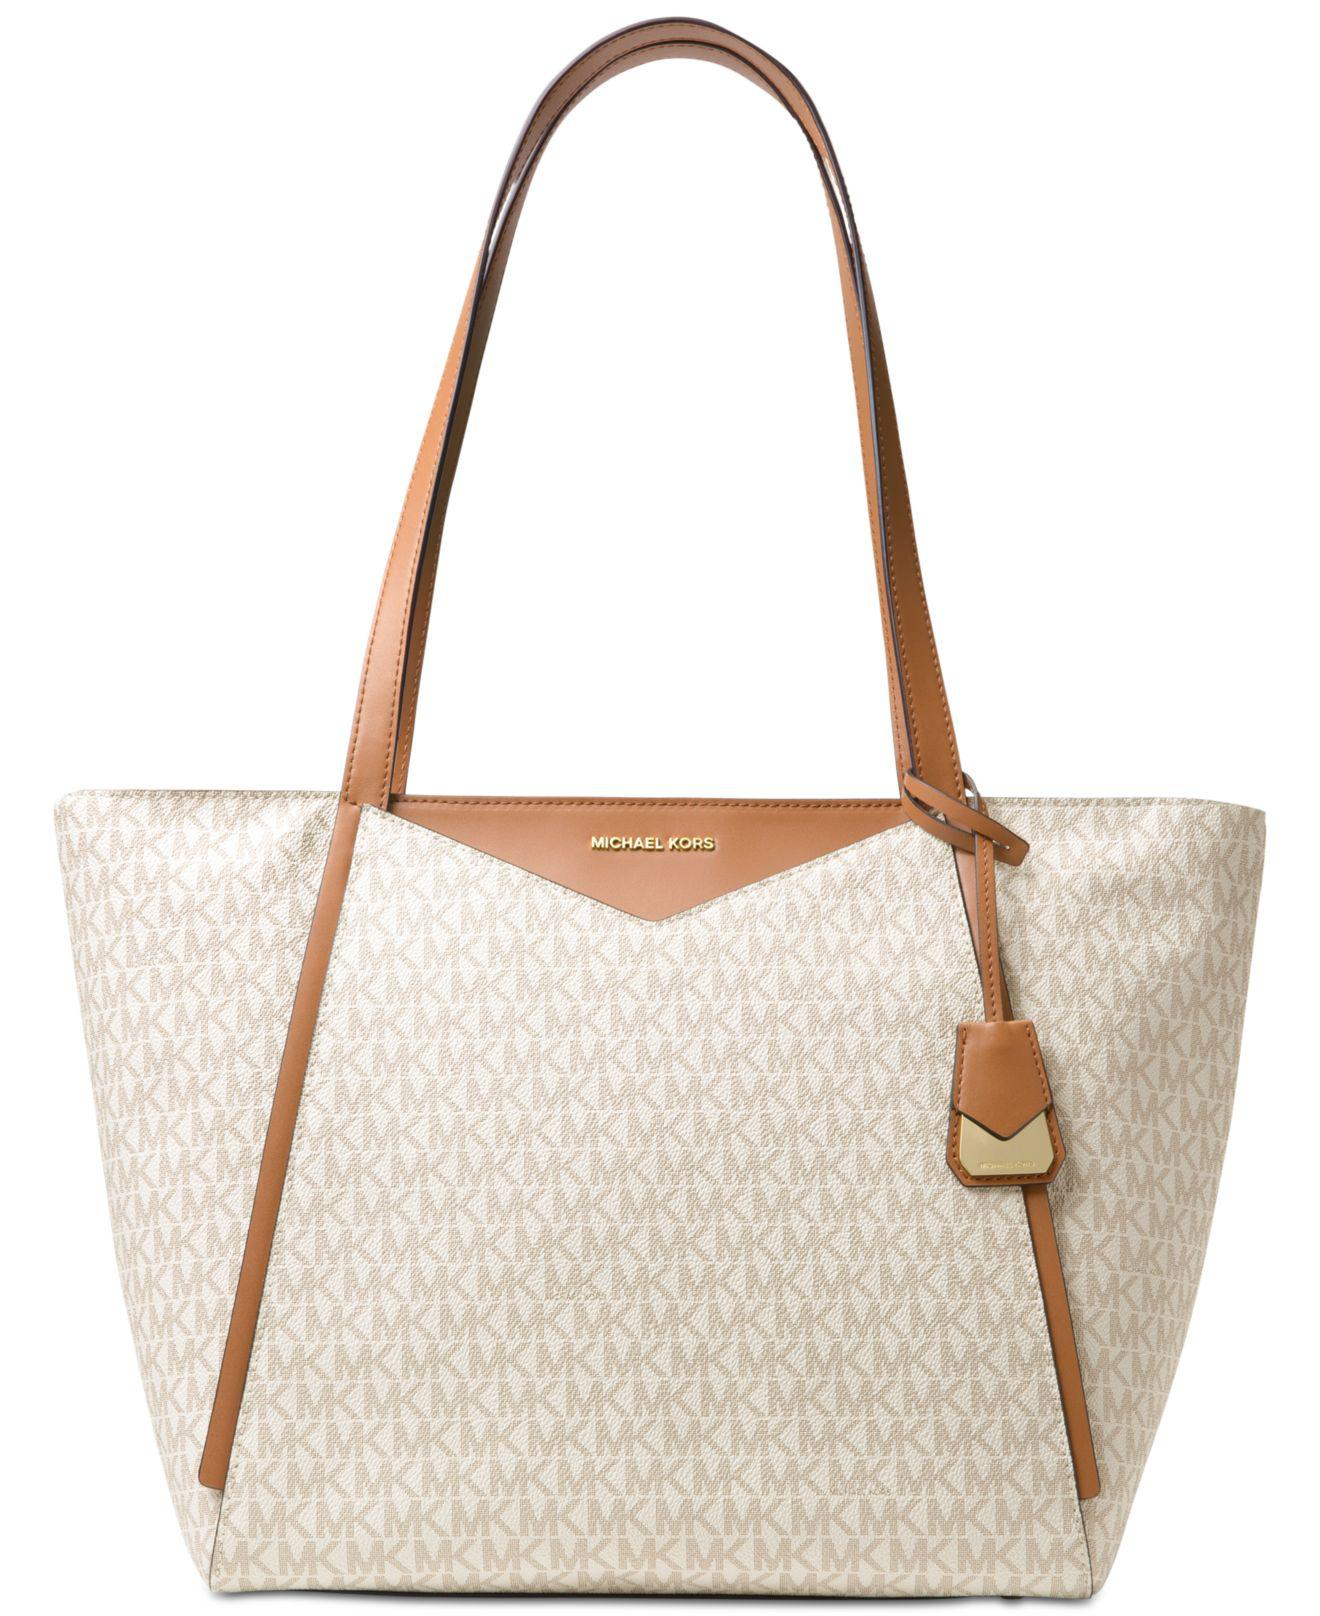 48c2bb7199e Michael Kors - Multicolor Whitney Large Logo Tote - Lyst. View fullscreen